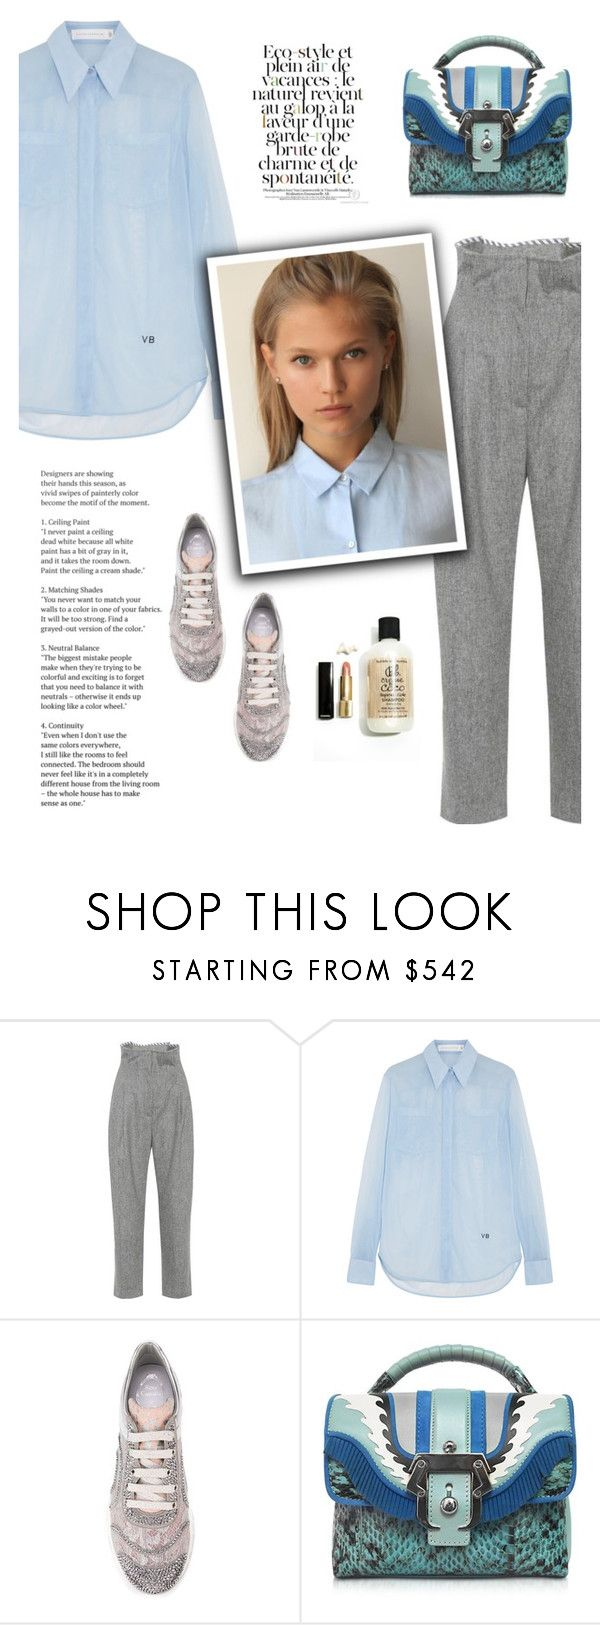 """09.12.2017"" by bliznec-anna ❤ liked on Polyvore featuring Anna October, Victoria Beckham, René Caovilla, Paula Cademartori and Eco Style"